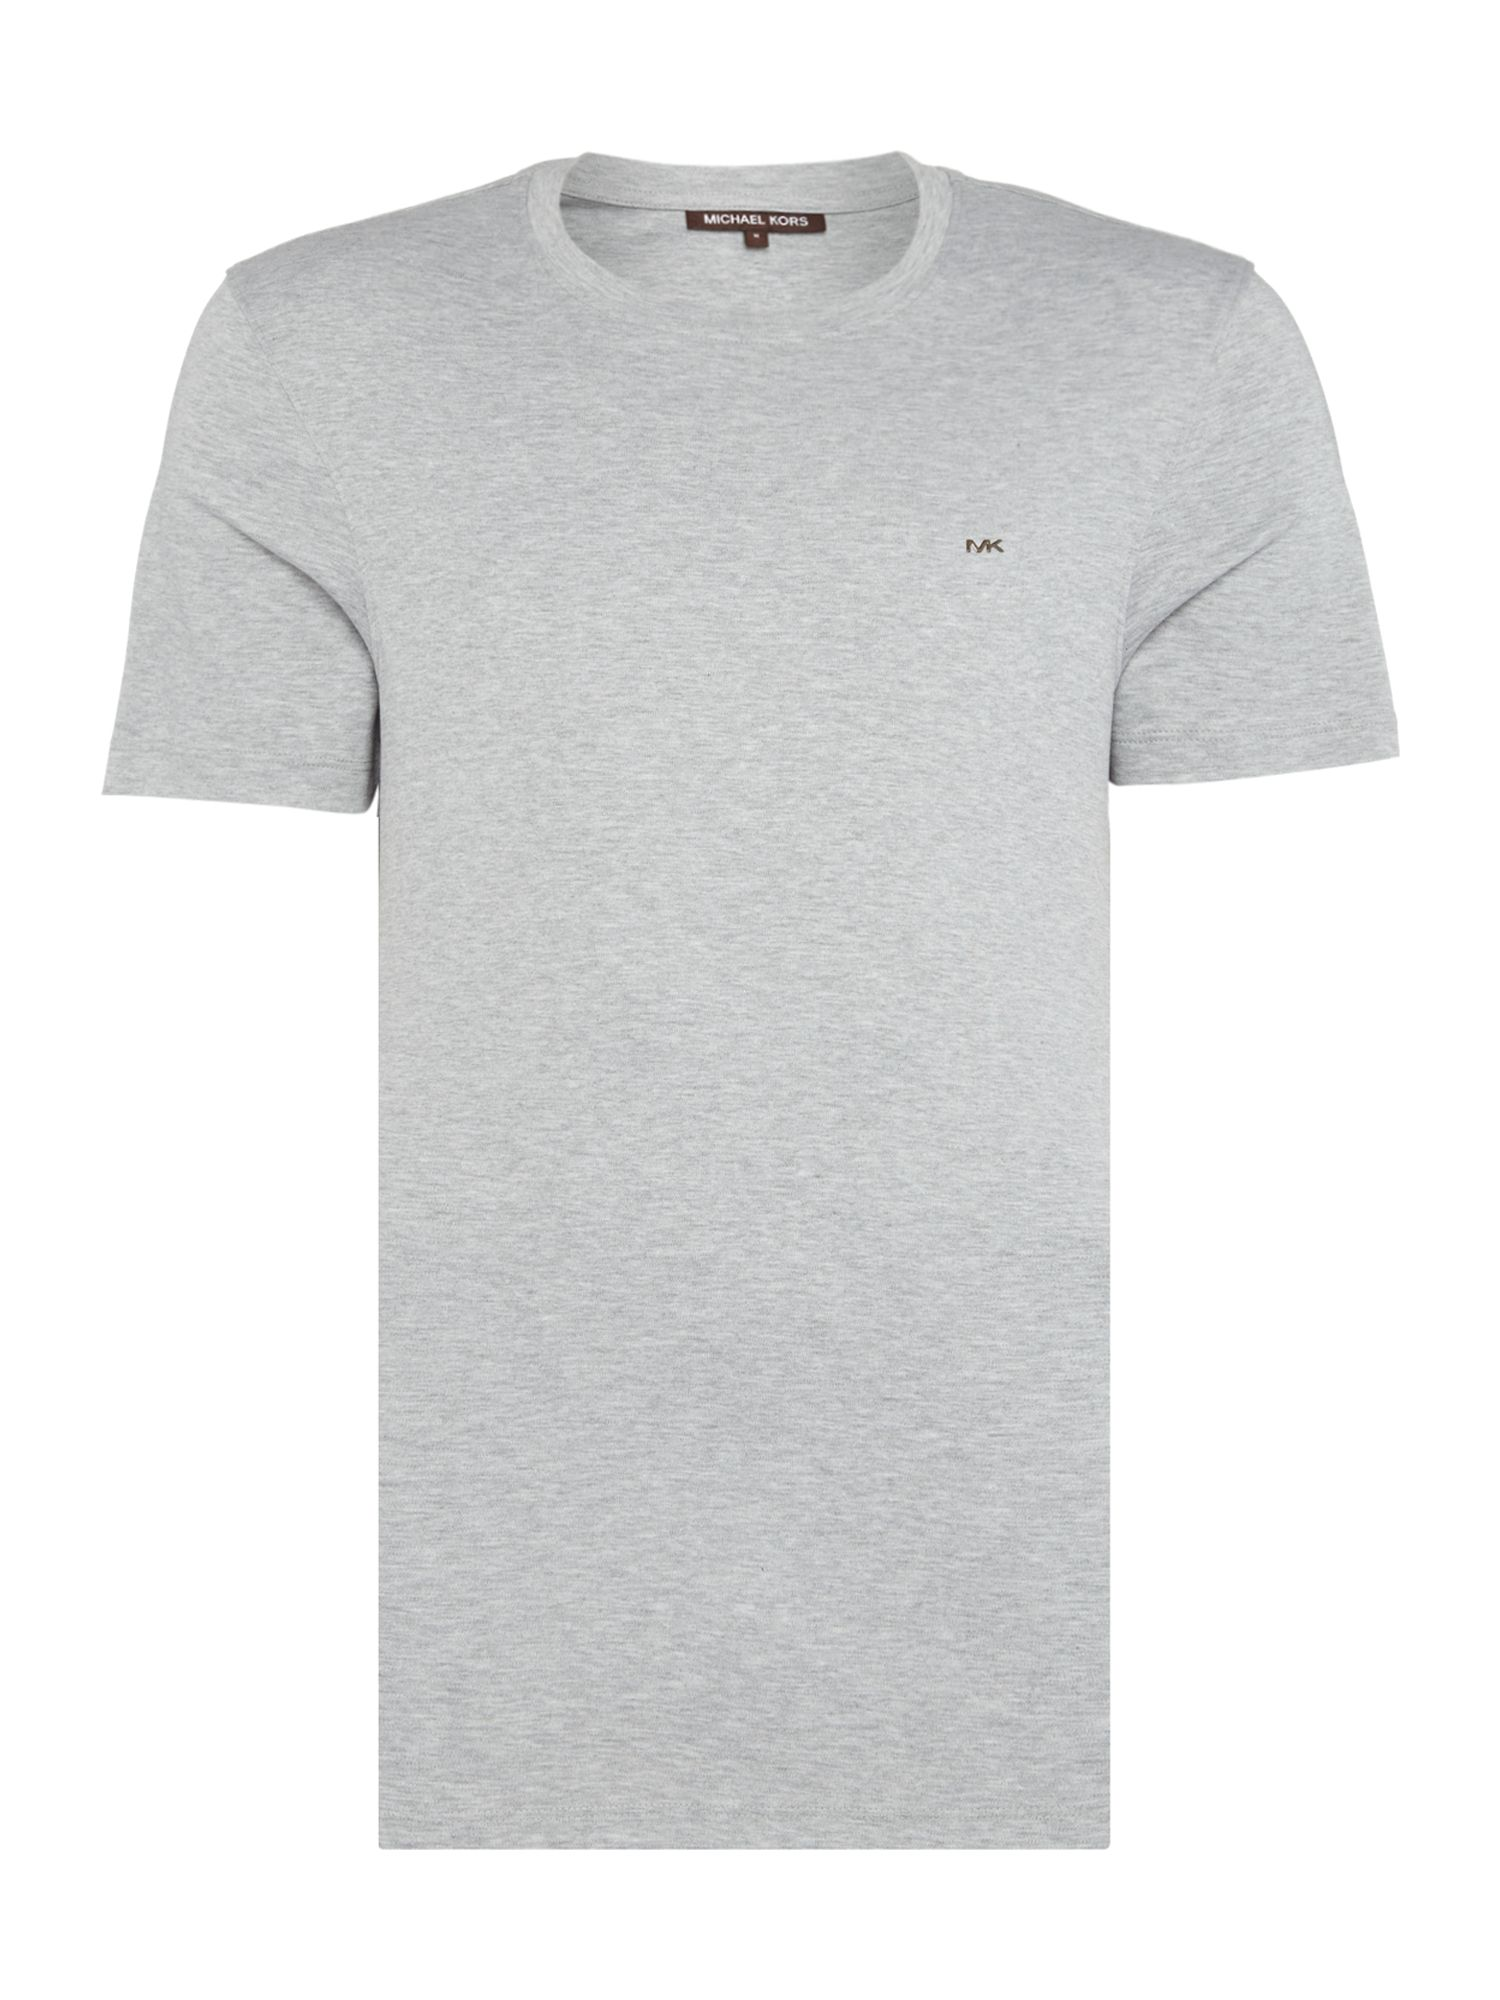 Men's Michael Kors Regular fit sleek MK logo t shirt, Light Grey